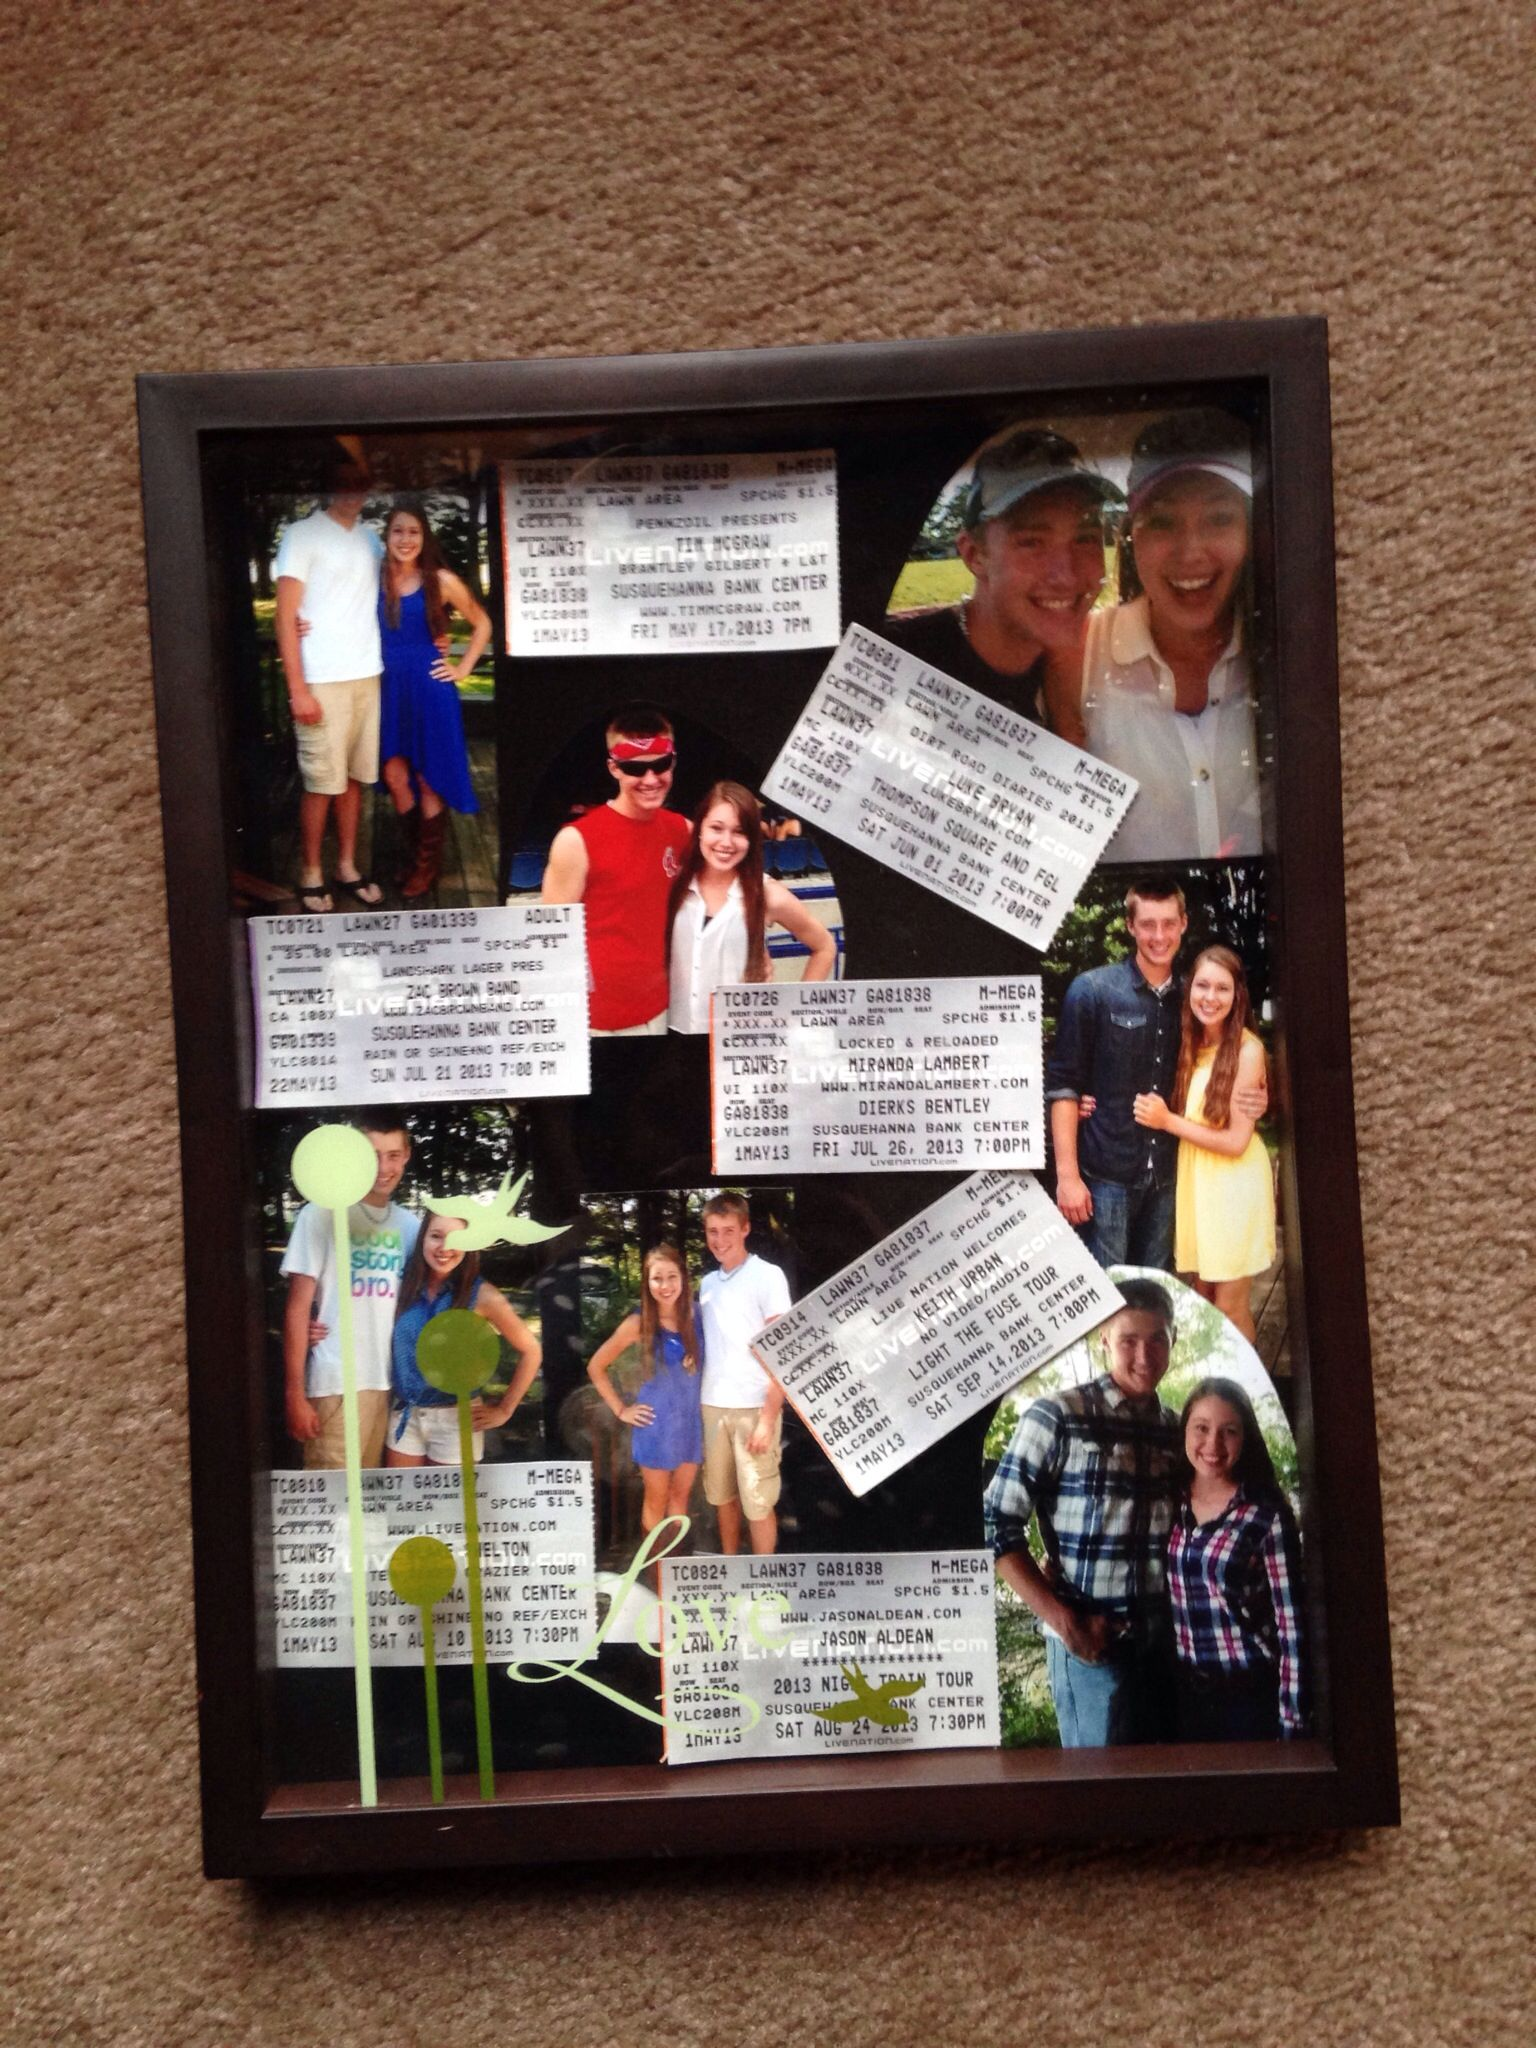 Made a collage of photos in a shadow box from our country megaticket